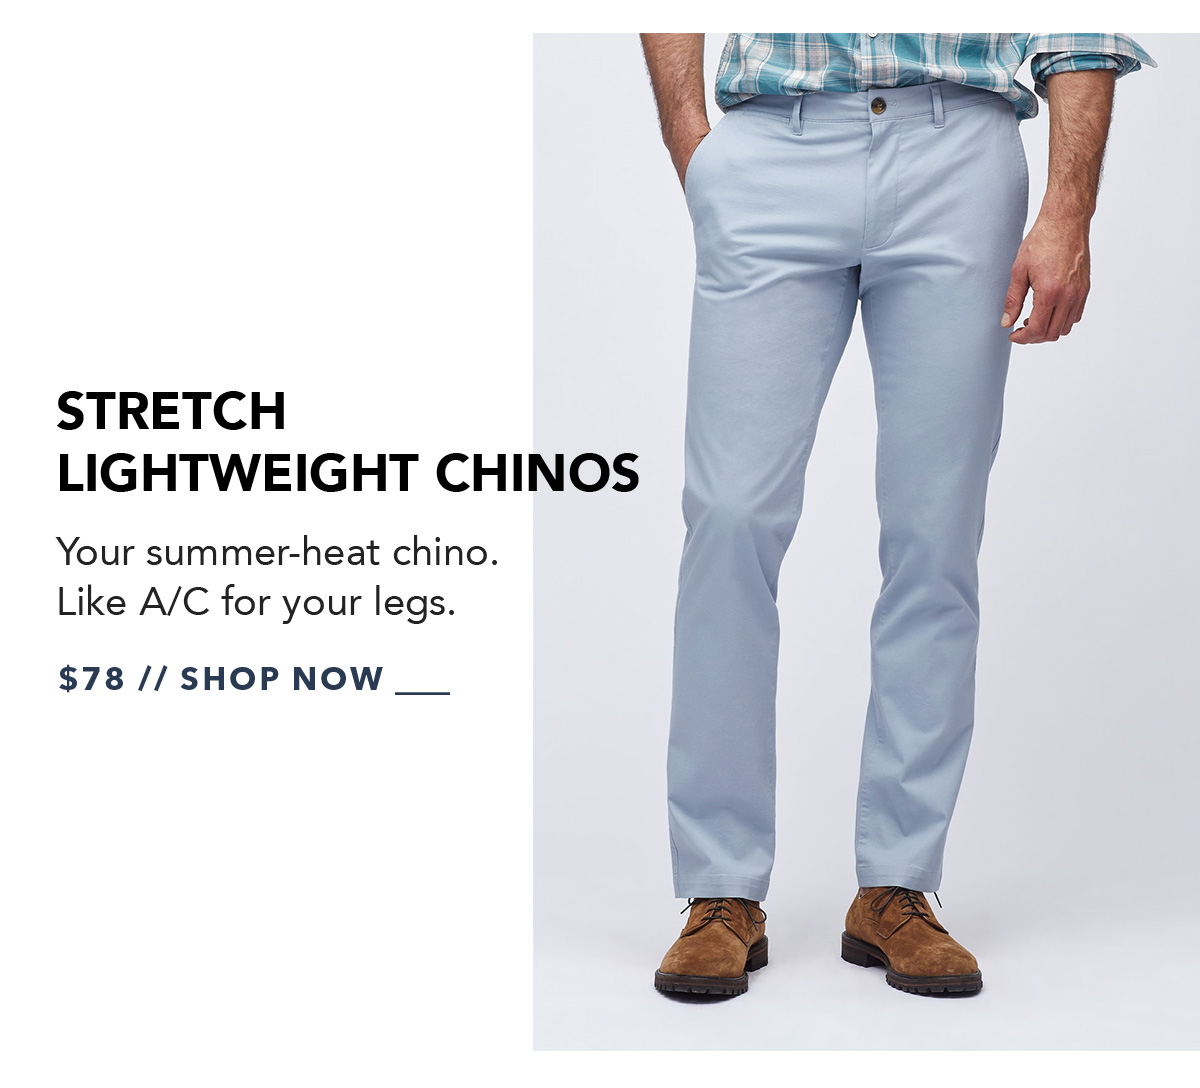 Stretch Lightweight Chinos: Your summer-heat chino. Like A/C for your legs.